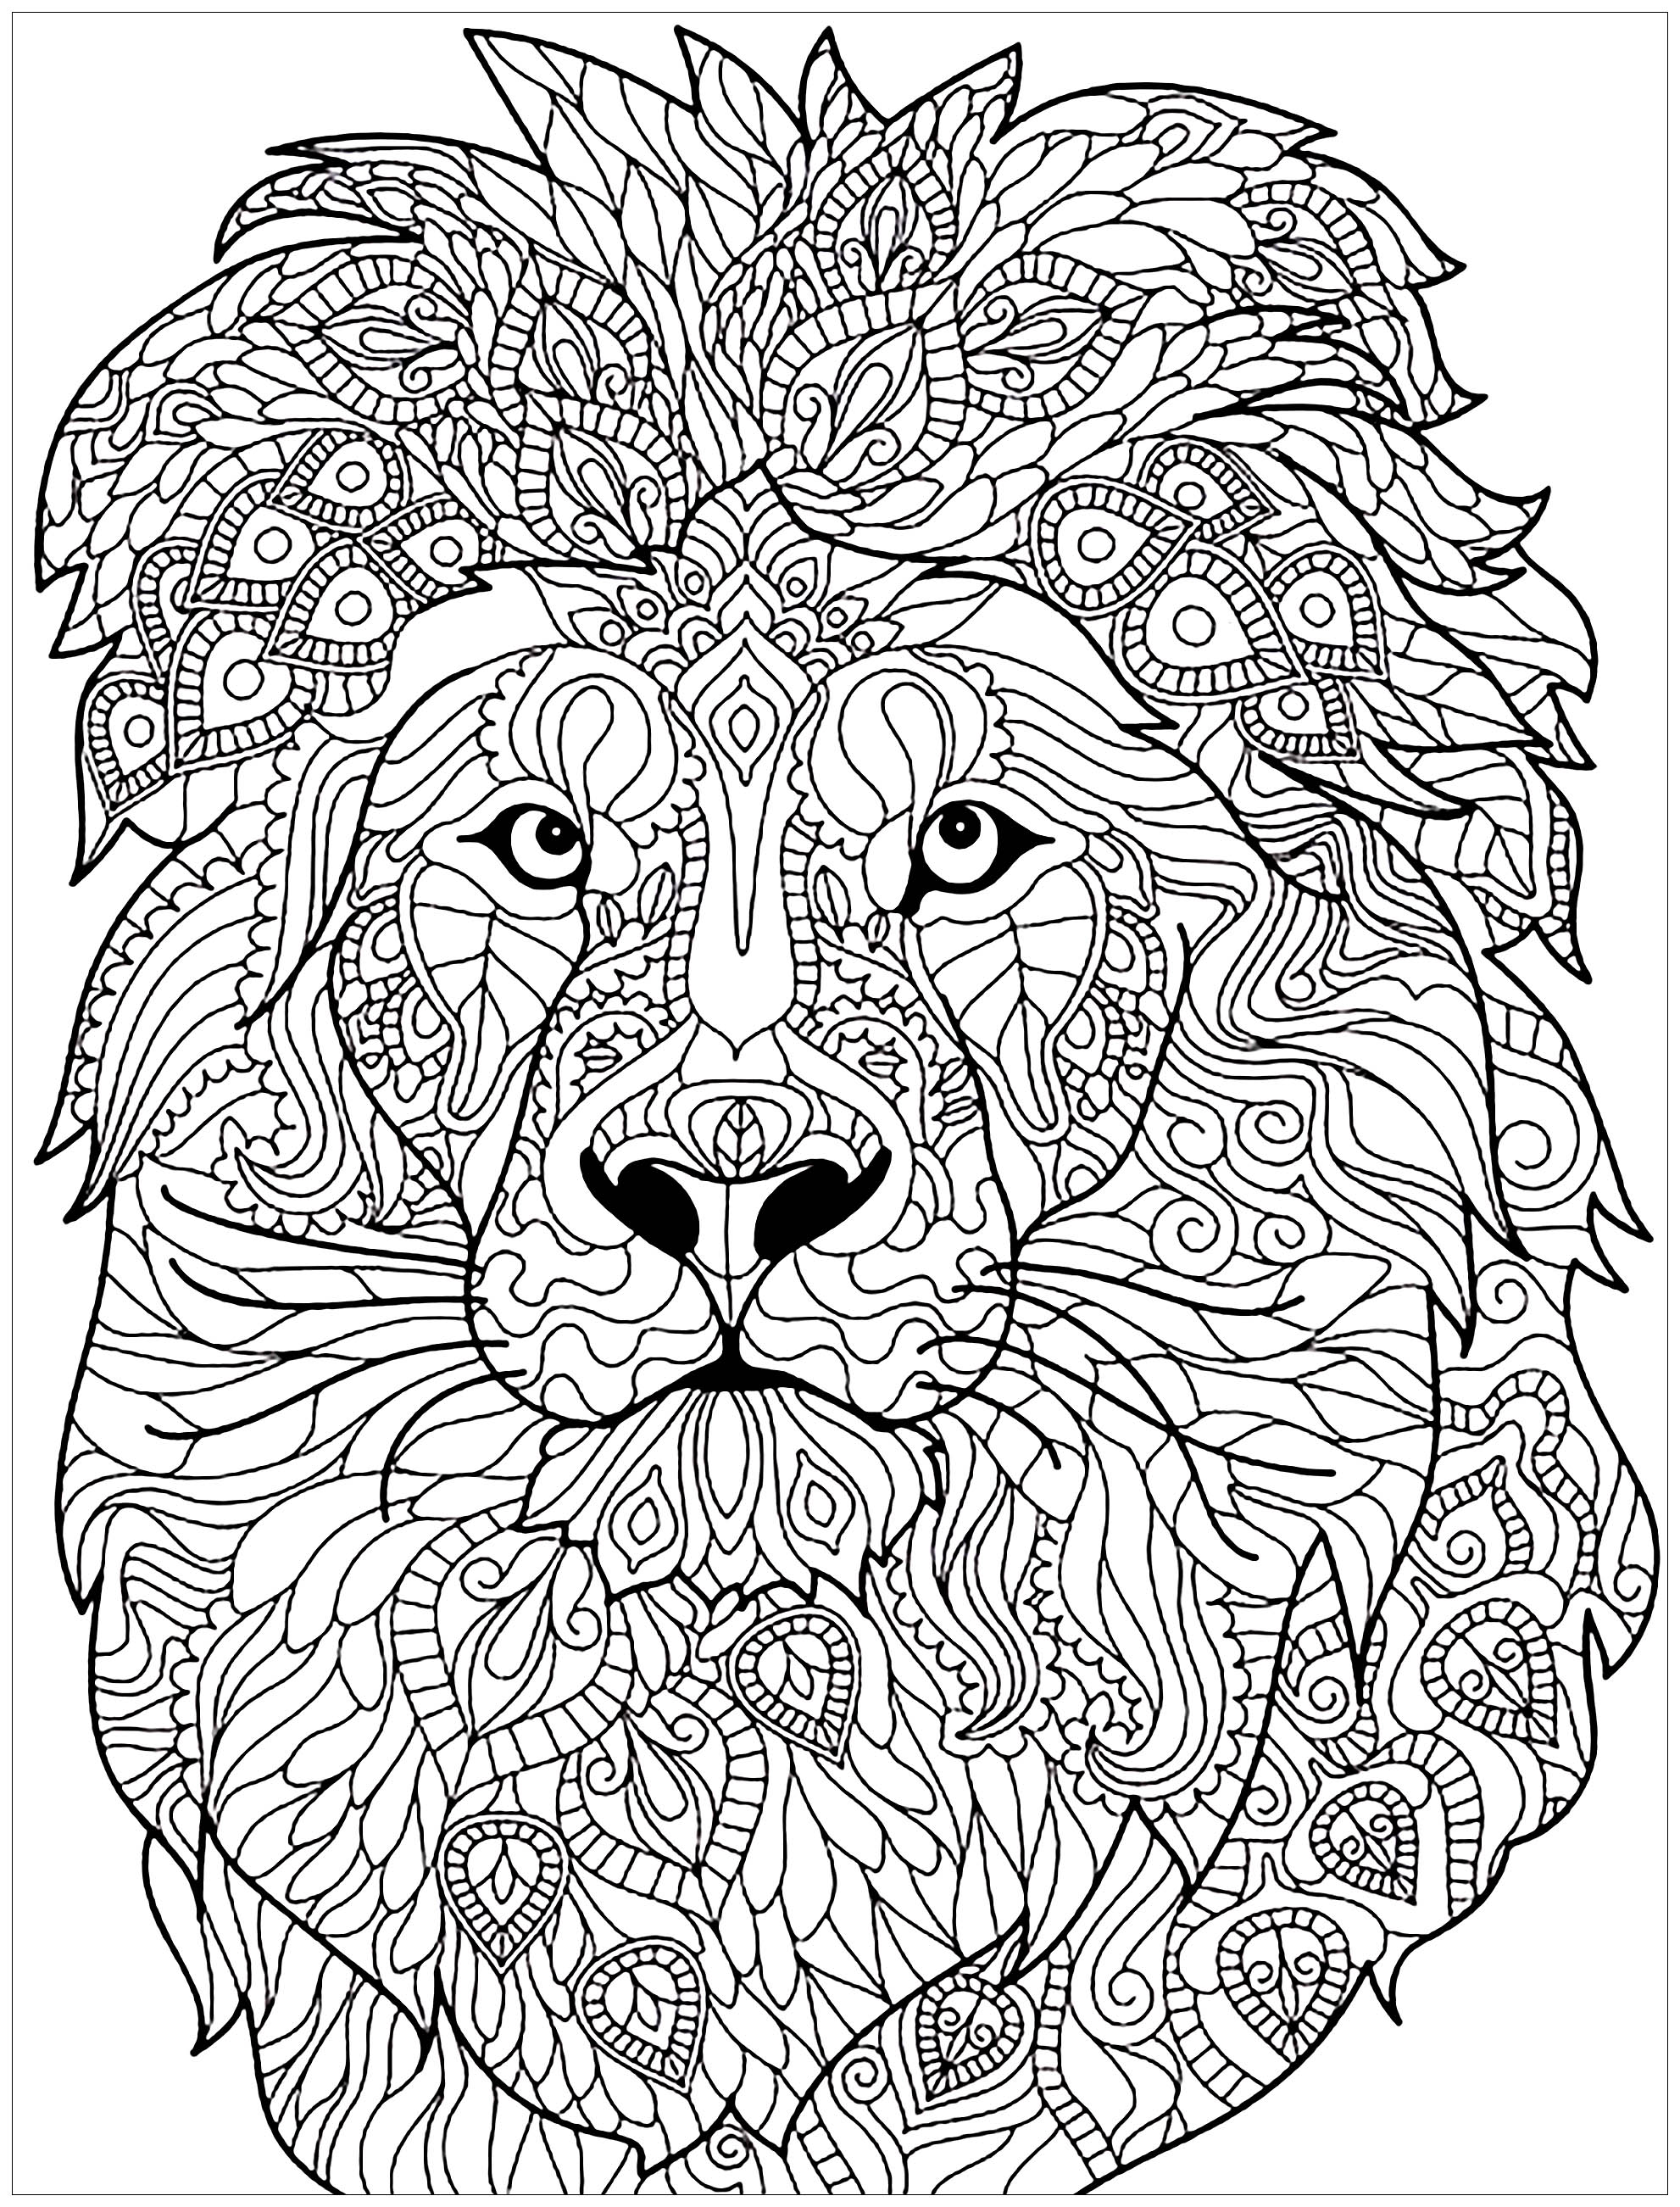 Lion plex patterns Lions Adult